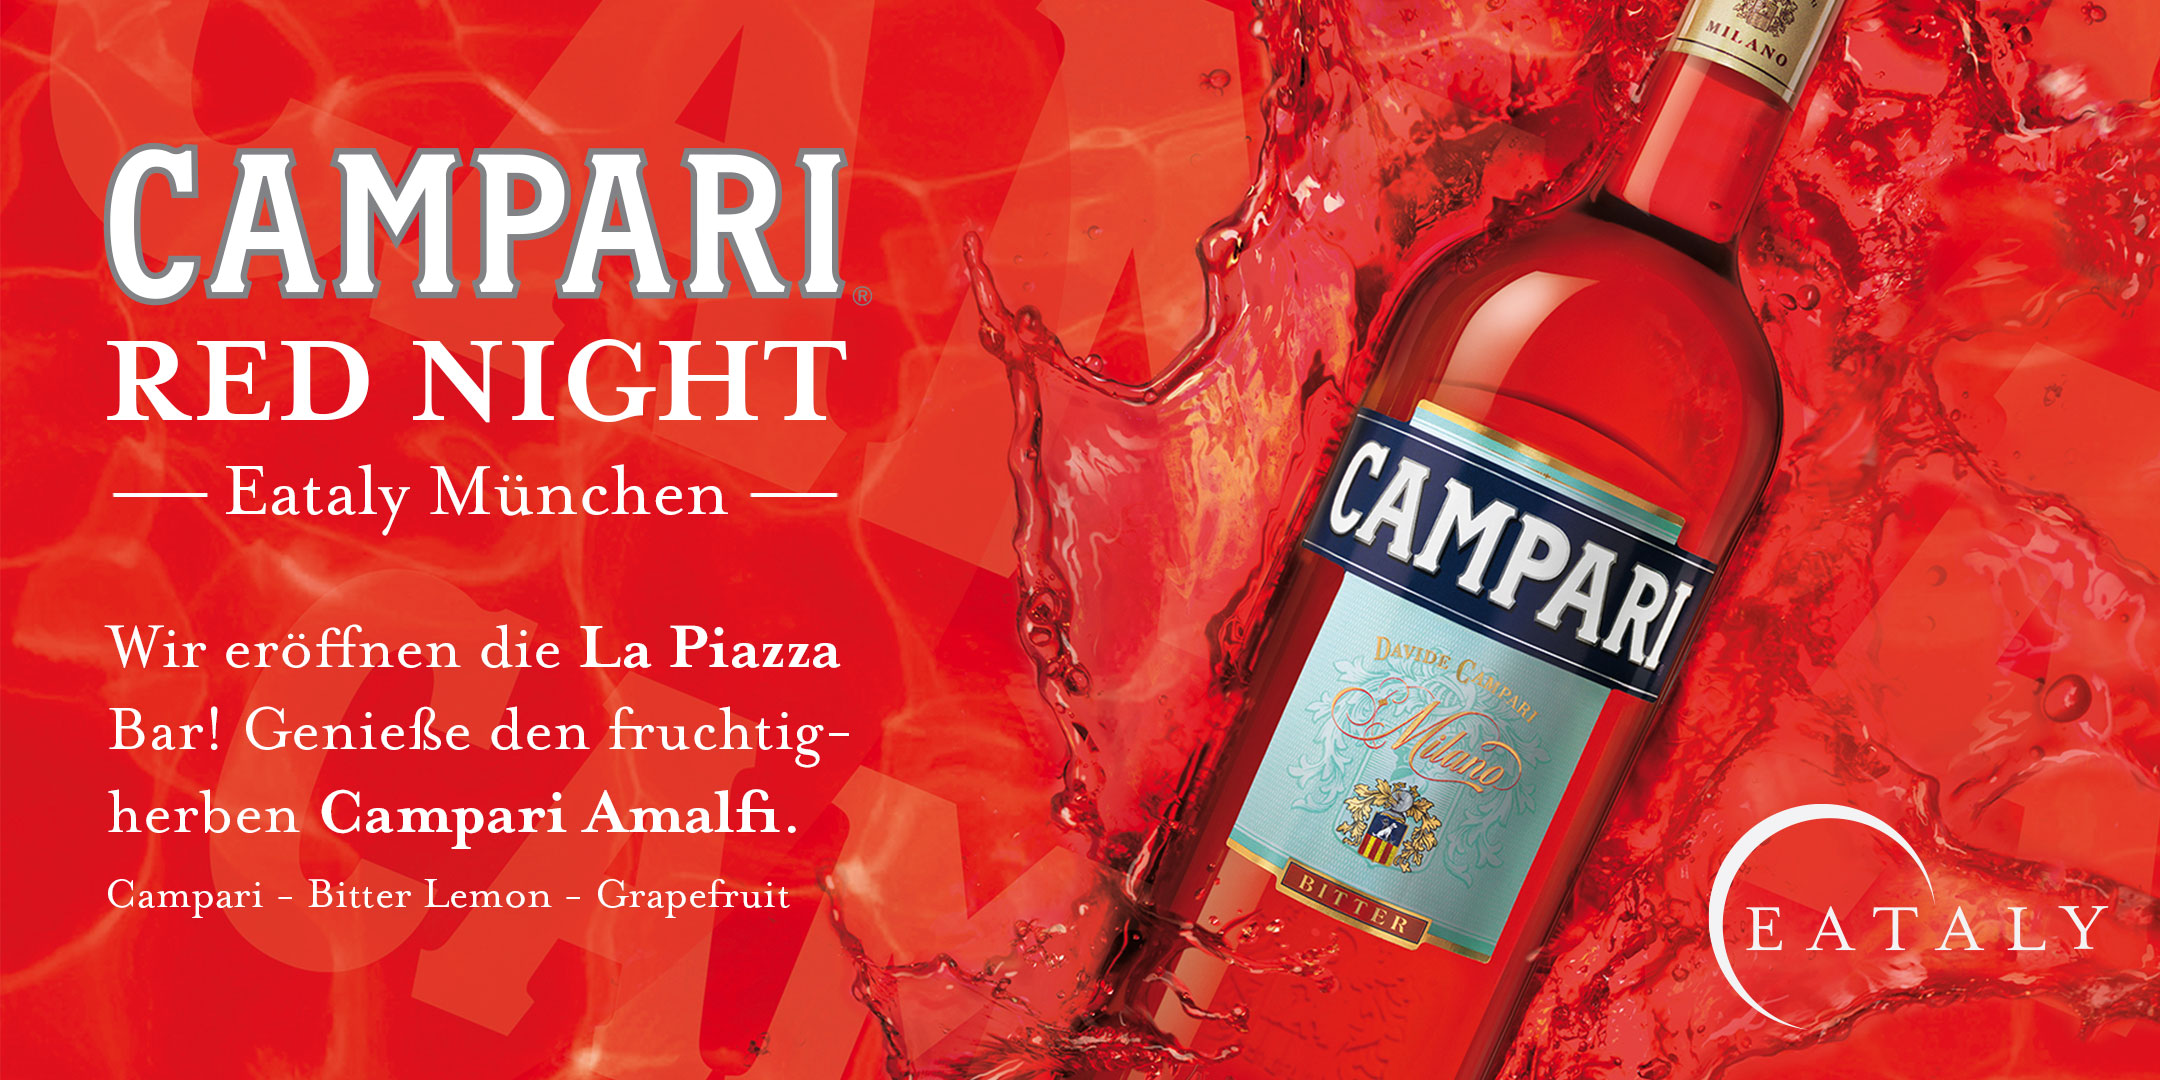 Camparirednight_visual_final